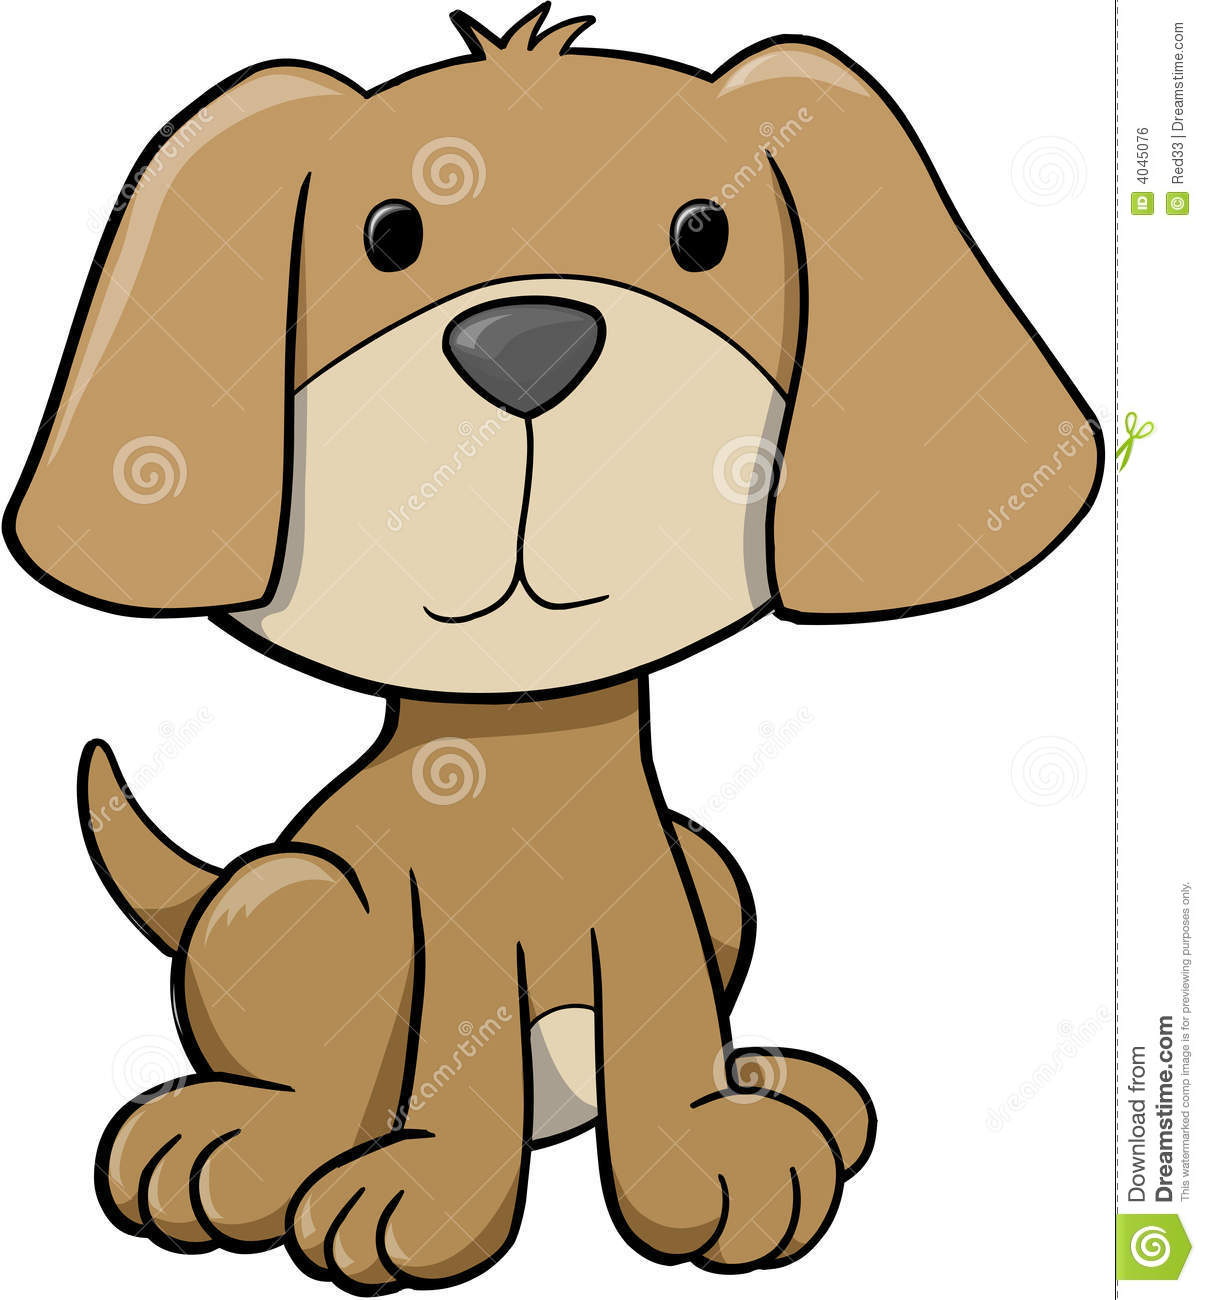 Dog Vector Illustration Royalty Free Stock Image Image 4045076